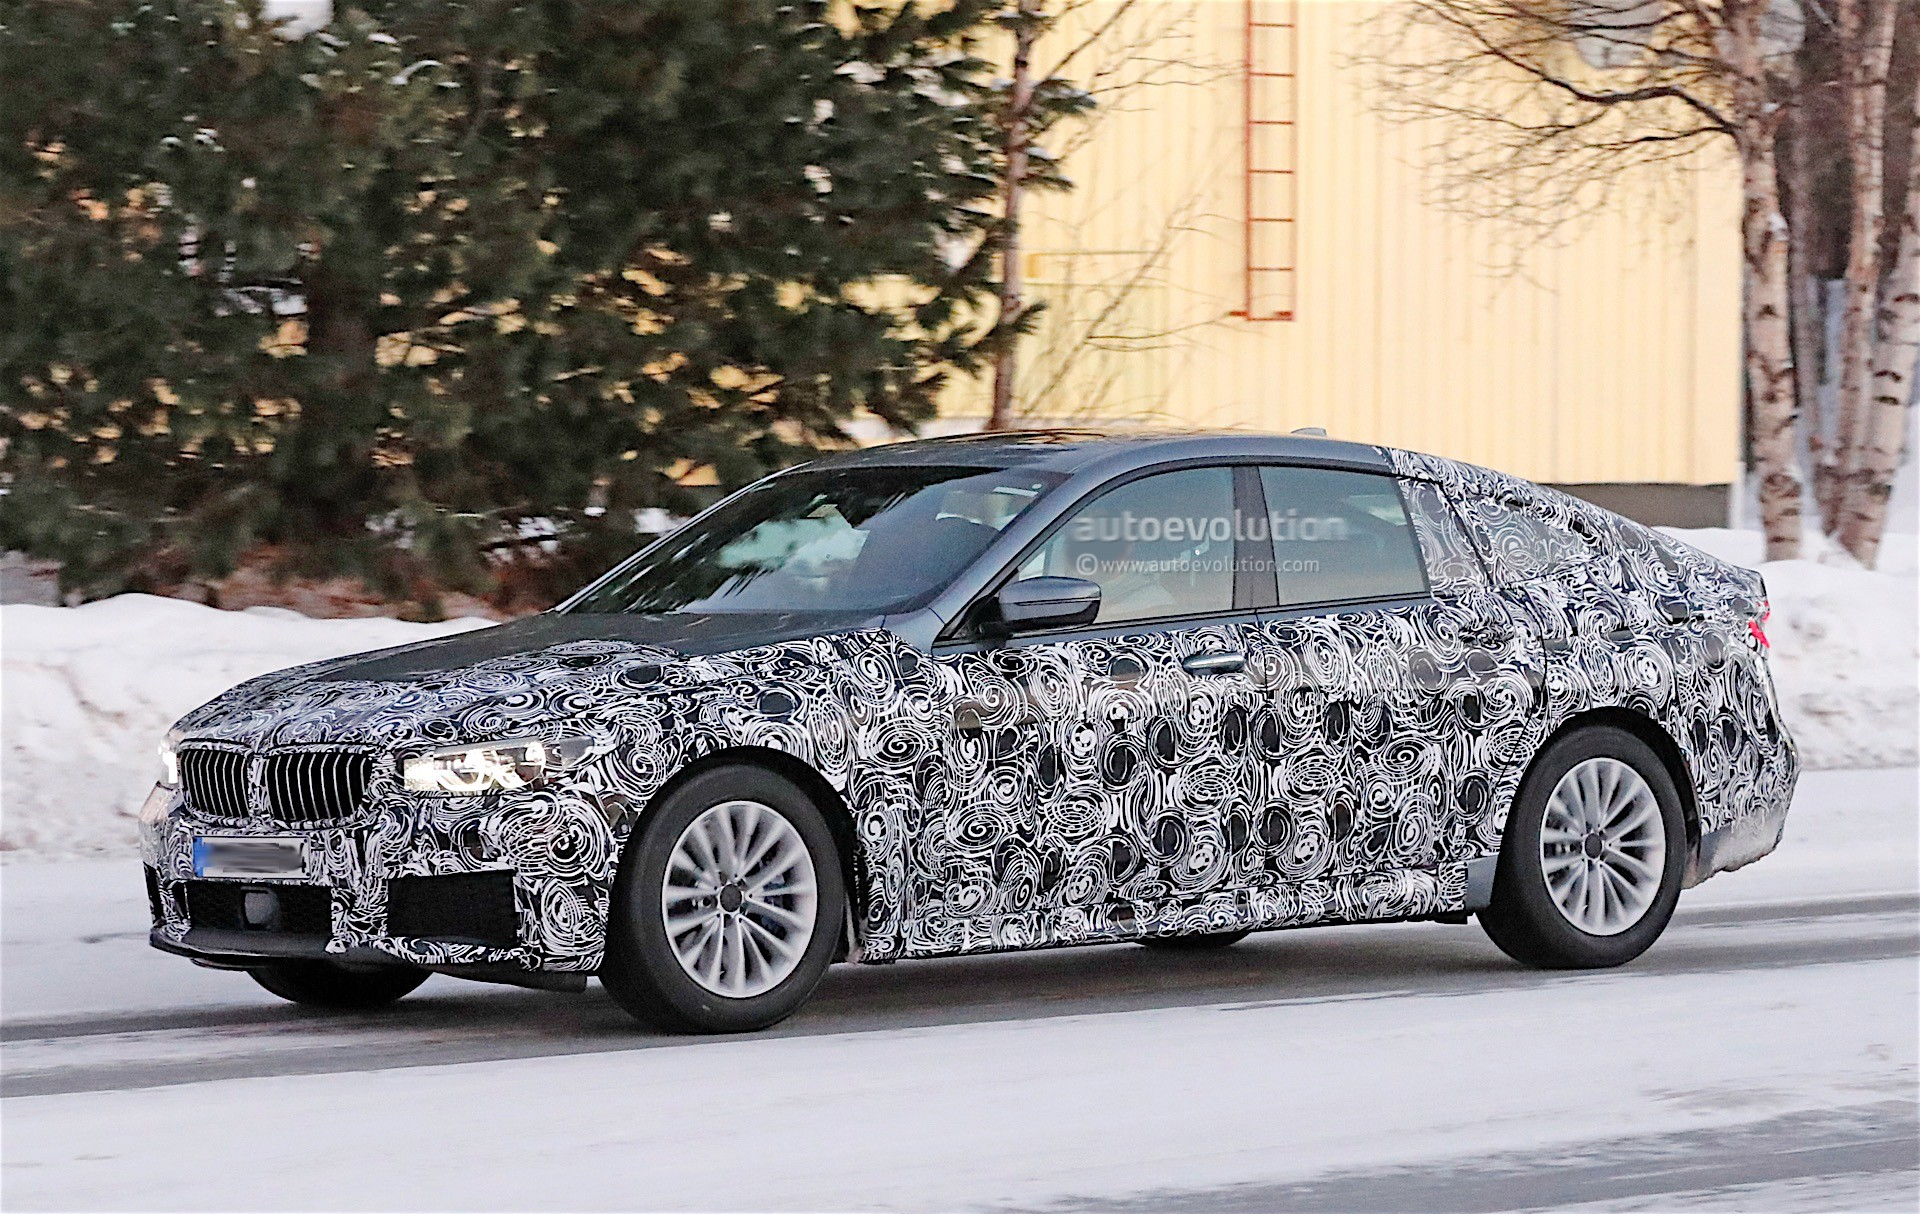 2018 bmw 6 series gt spied while testing m sport version in winter conditions autoevolution. Black Bedroom Furniture Sets. Home Design Ideas